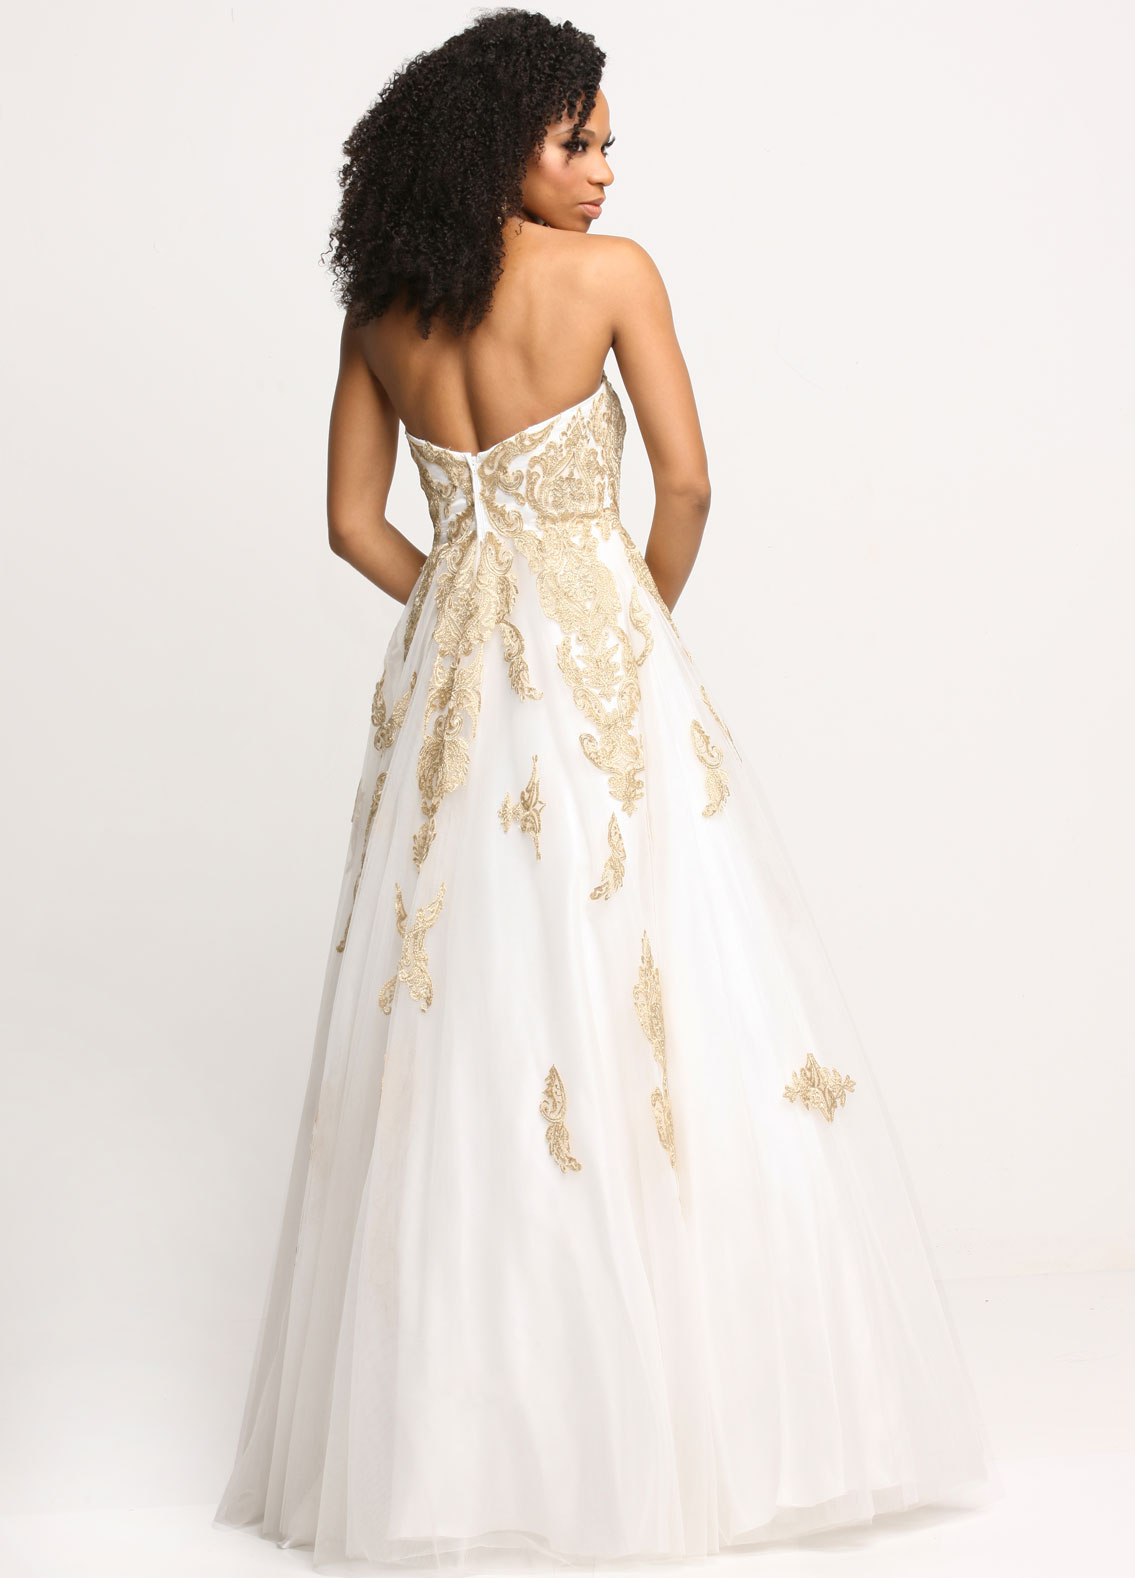 Image showing back view of style #71634